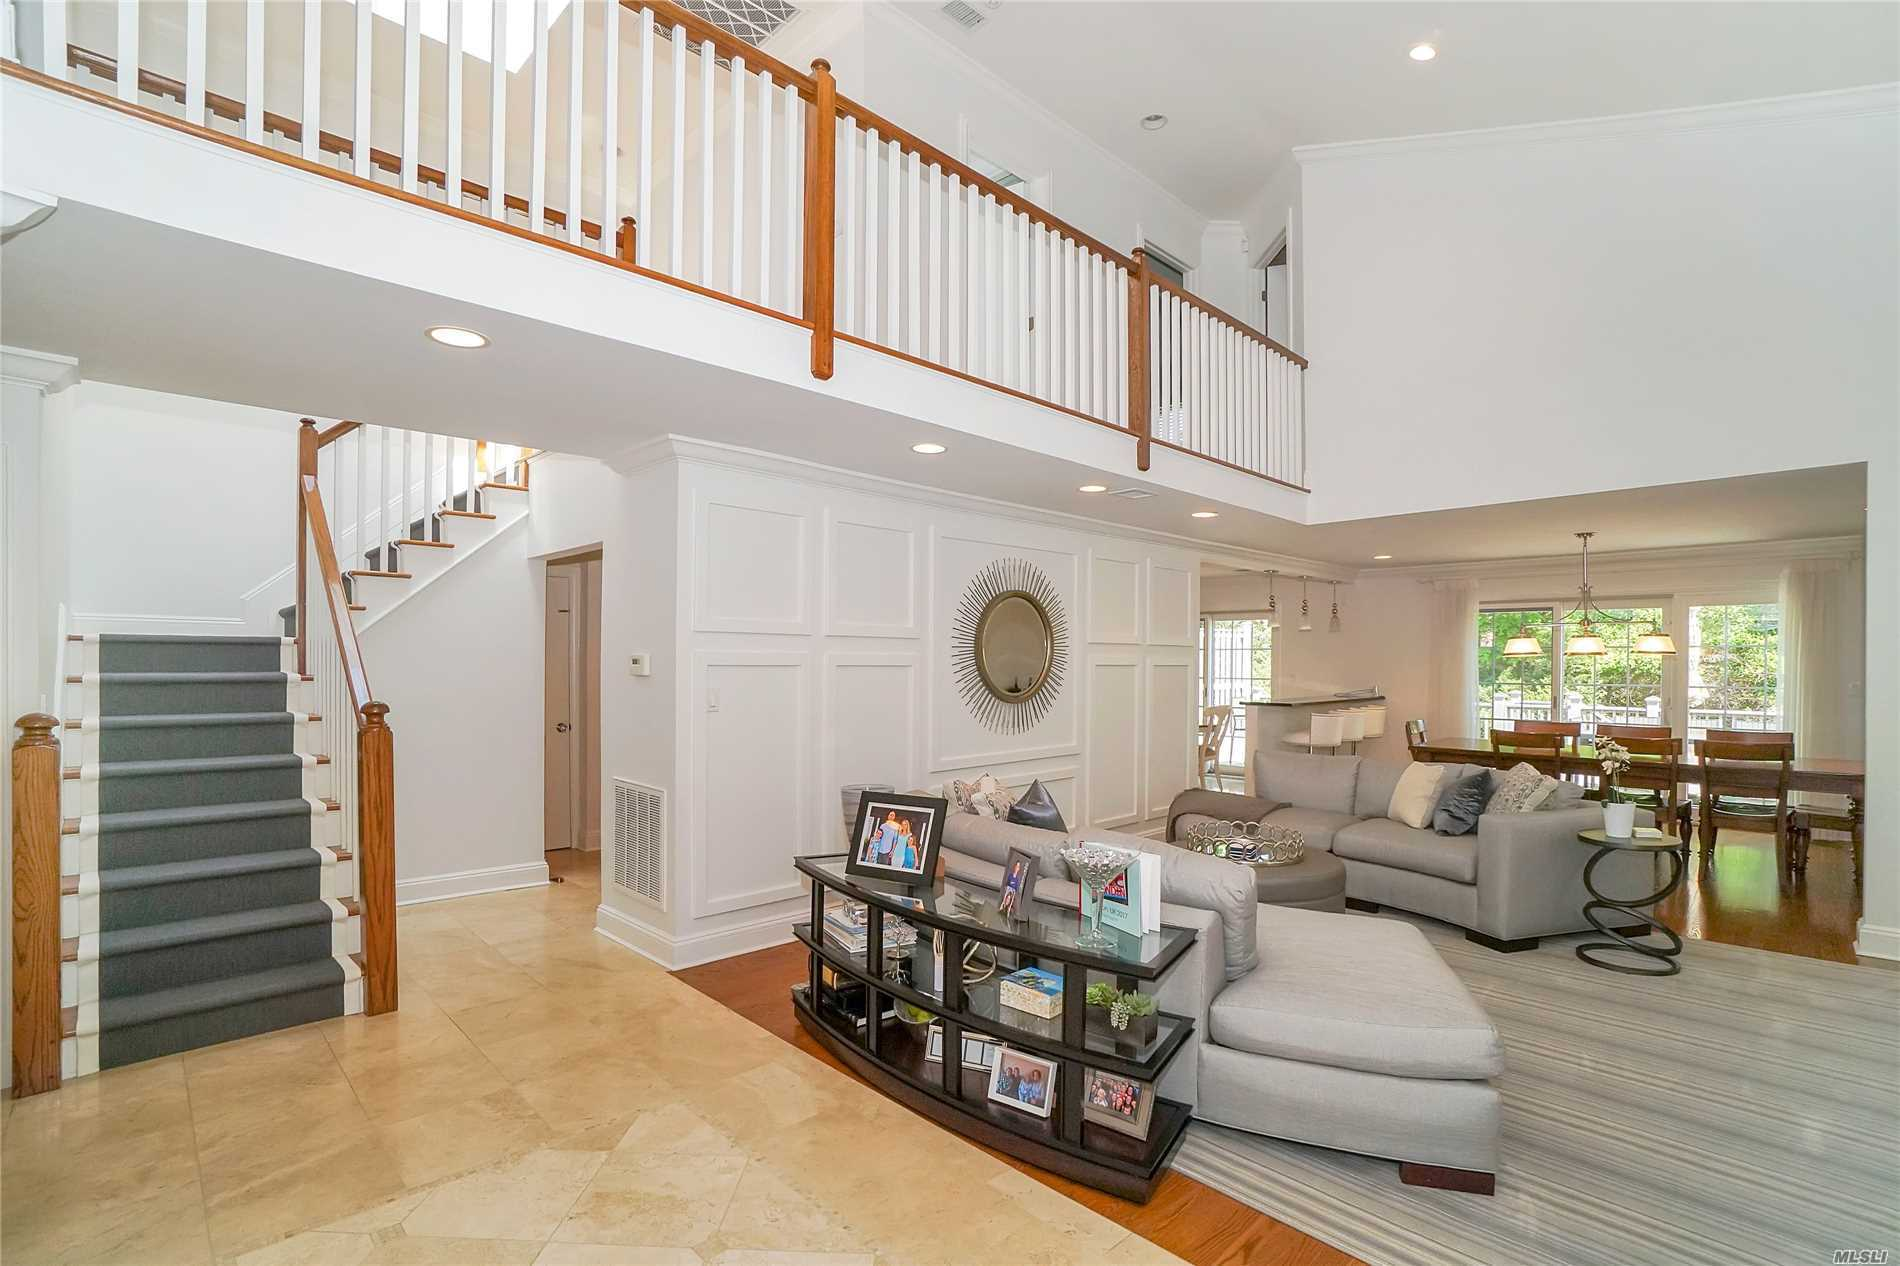 Designer Showcase Redone by Stu Senter with new windows and doors, opened Kitchen, main floor Family Room, Gracious Cathedral Ceiling Living Room , Formal Dining Room,  Luxurious Master Suite with 2 walk-in closets and over sized custom bath, two additional bedrooms and custom bath with wood floors throughout. The lower level is finished with a Playroom plus two additional rooms and Bath. Outside to a private rear deck and the front over looks a Pond!